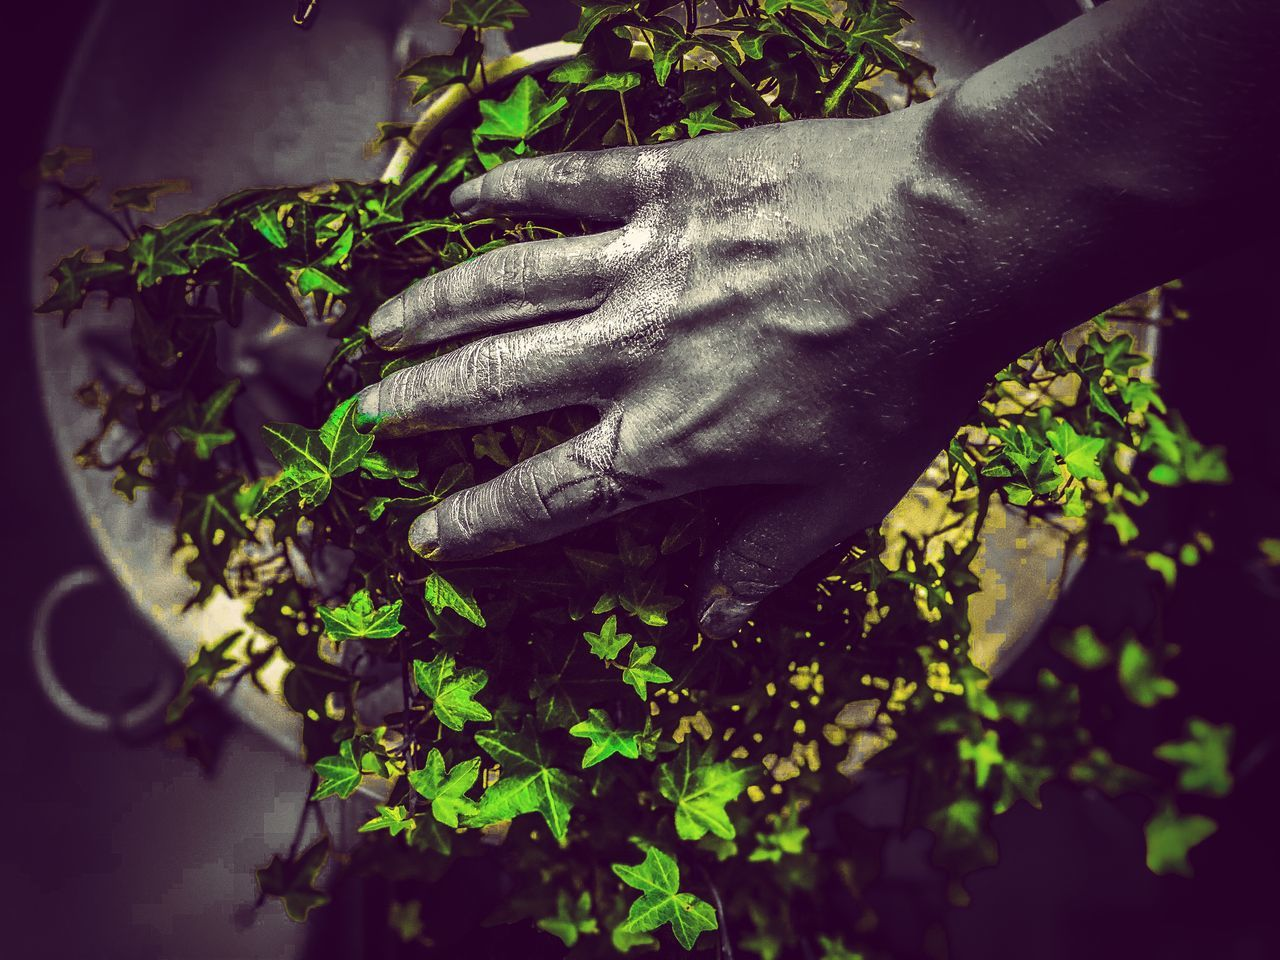 human hand, hand, human body part, plant, one person, leaf, real people, nature, plant part, growth, unrecognizable person, green color, day, body part, close-up, human finger, finger, holding, outdoors, gardening, herb, care